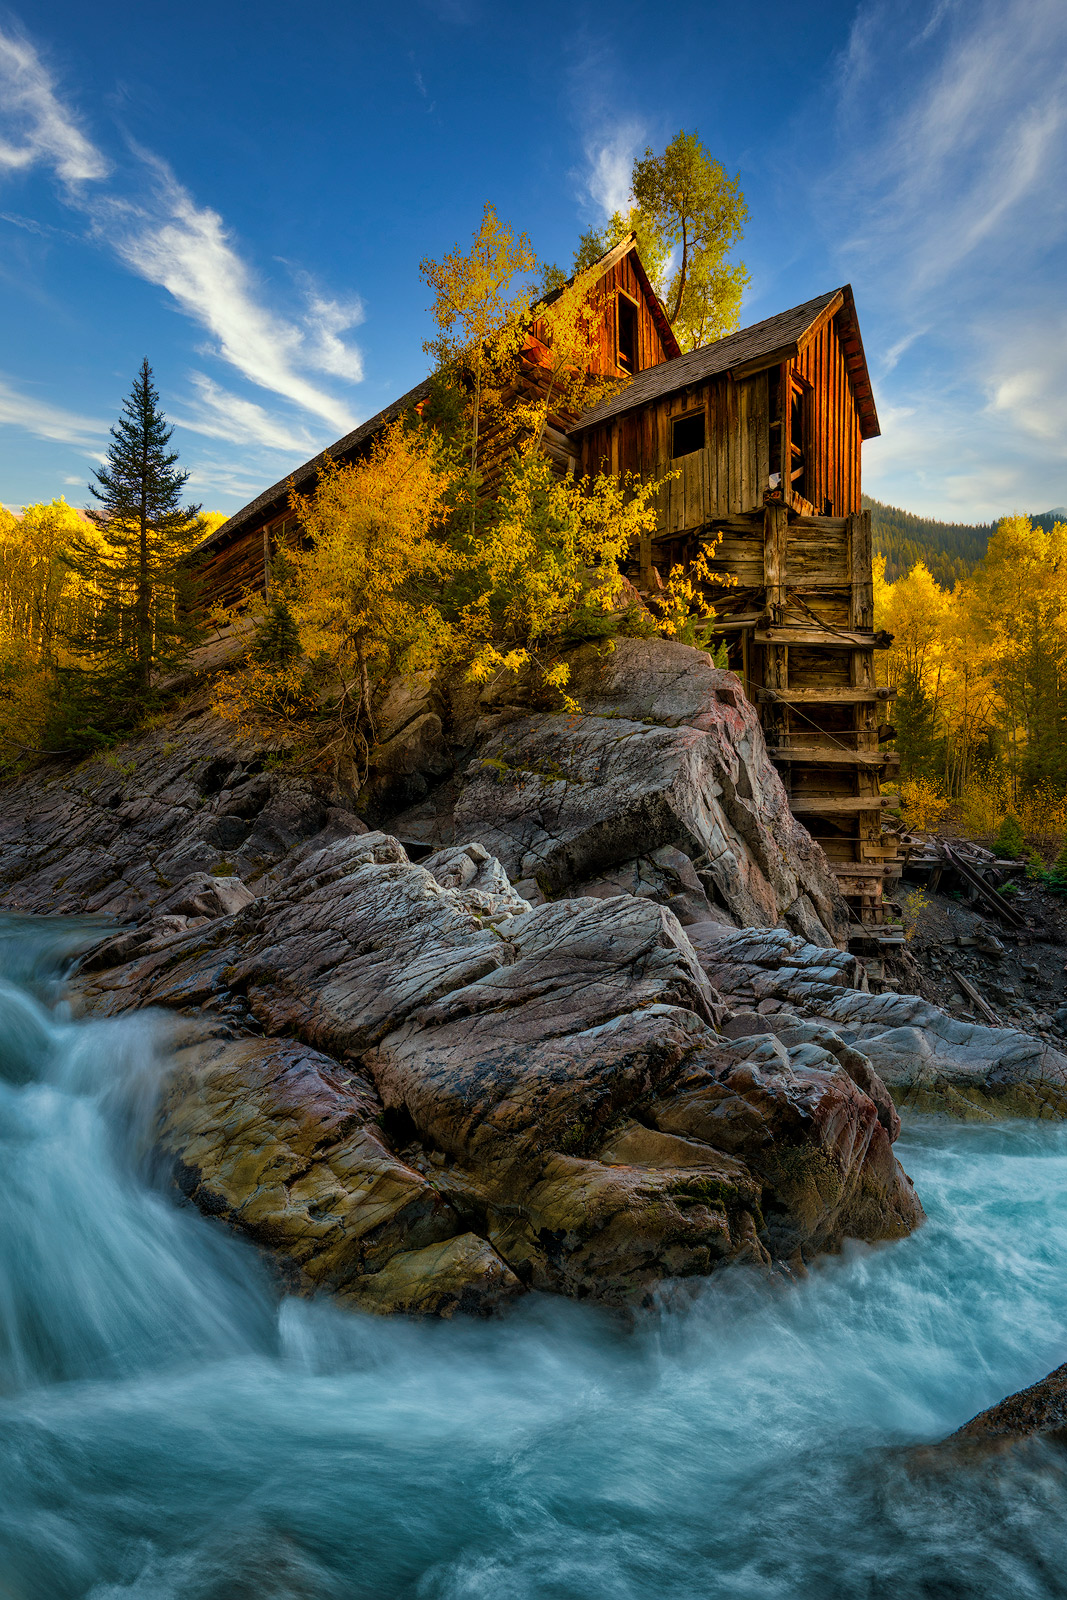 Crystal Mill, Colorado, Spring, waterfall, old structure, marble, mountains, snow, aspen, golden, famous, photos, location, autumn...